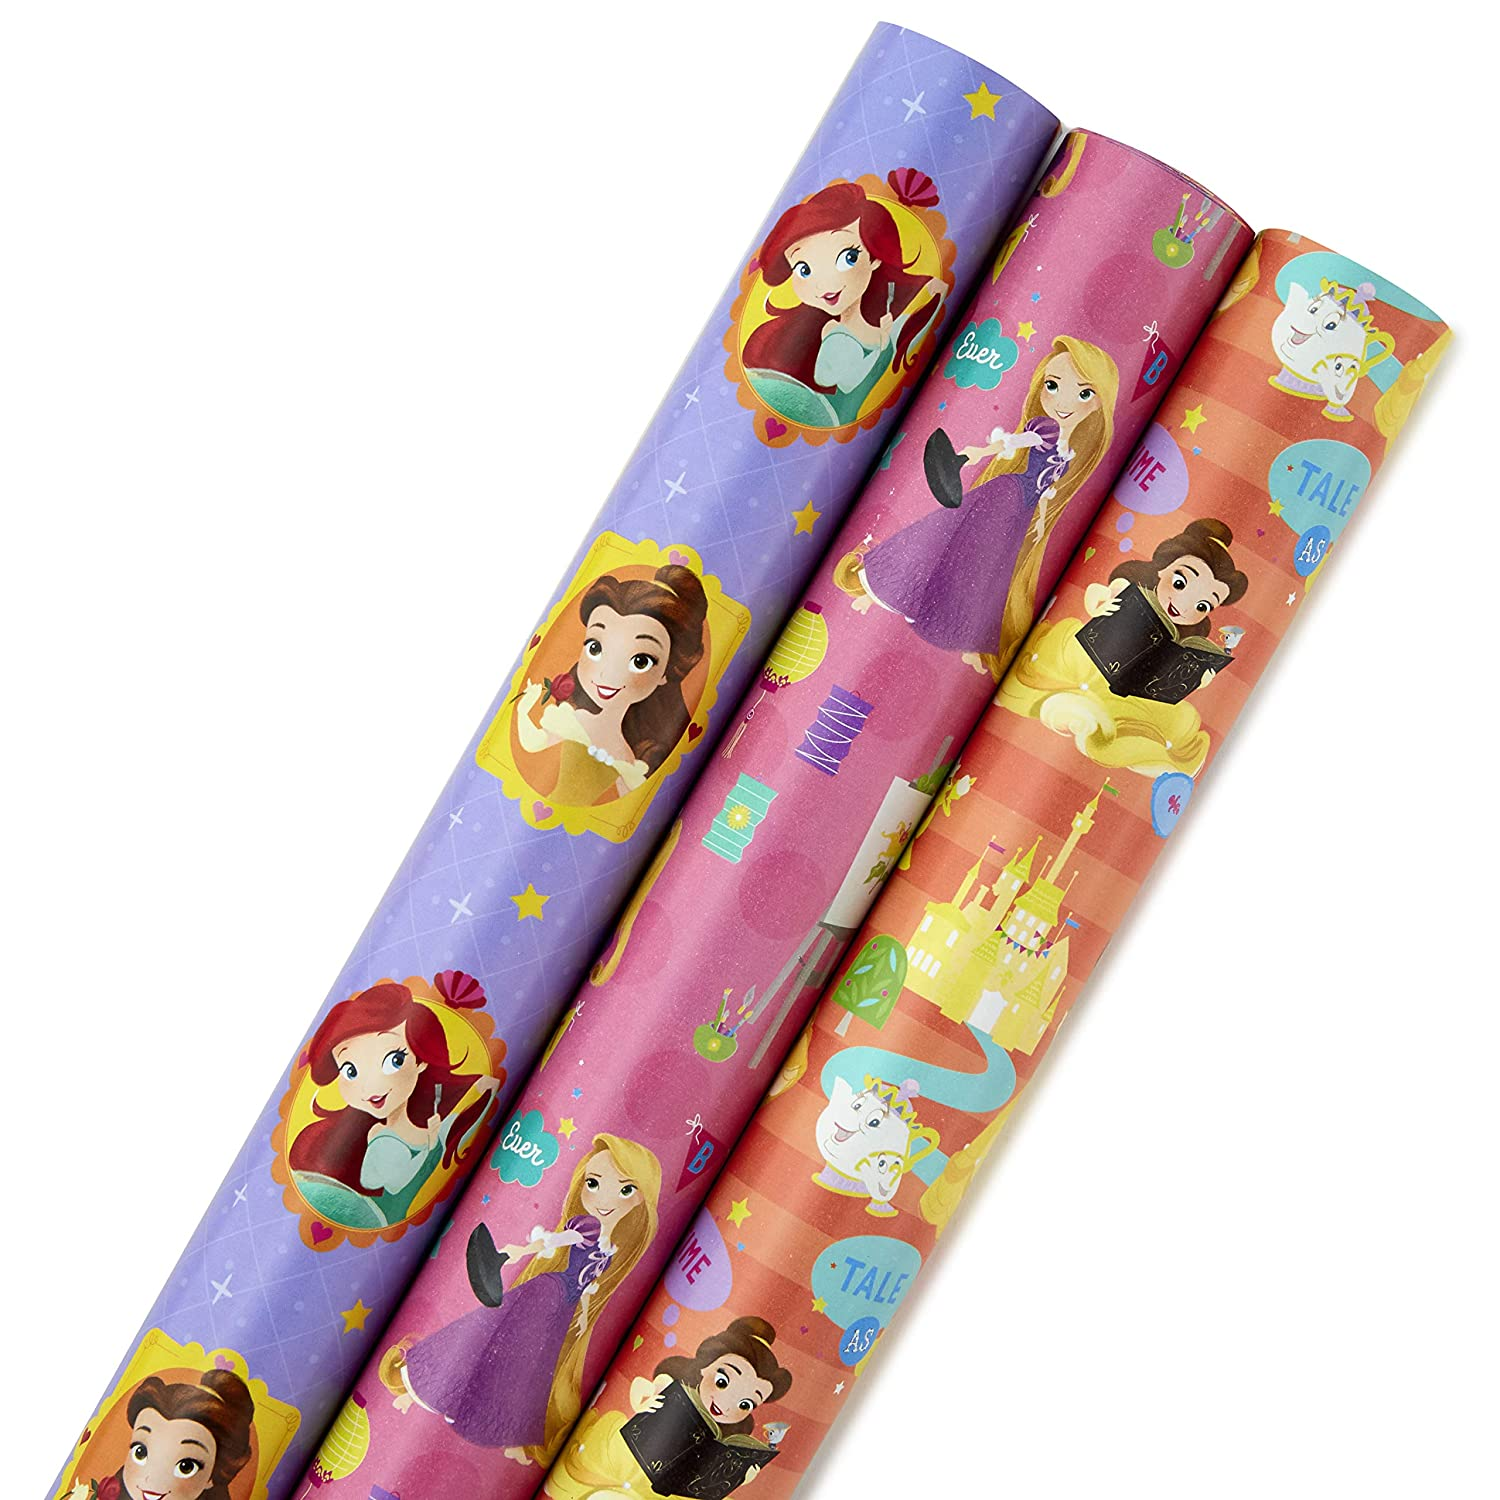 Hallmark Disney Princess Wrapping Paper with Cut Lines (Pack of 3, 105 sq. ft. ttl.) with Belle, Ariel, Cinderella, Rapunzel and More for Birthdays, Christmas or Any Occasion